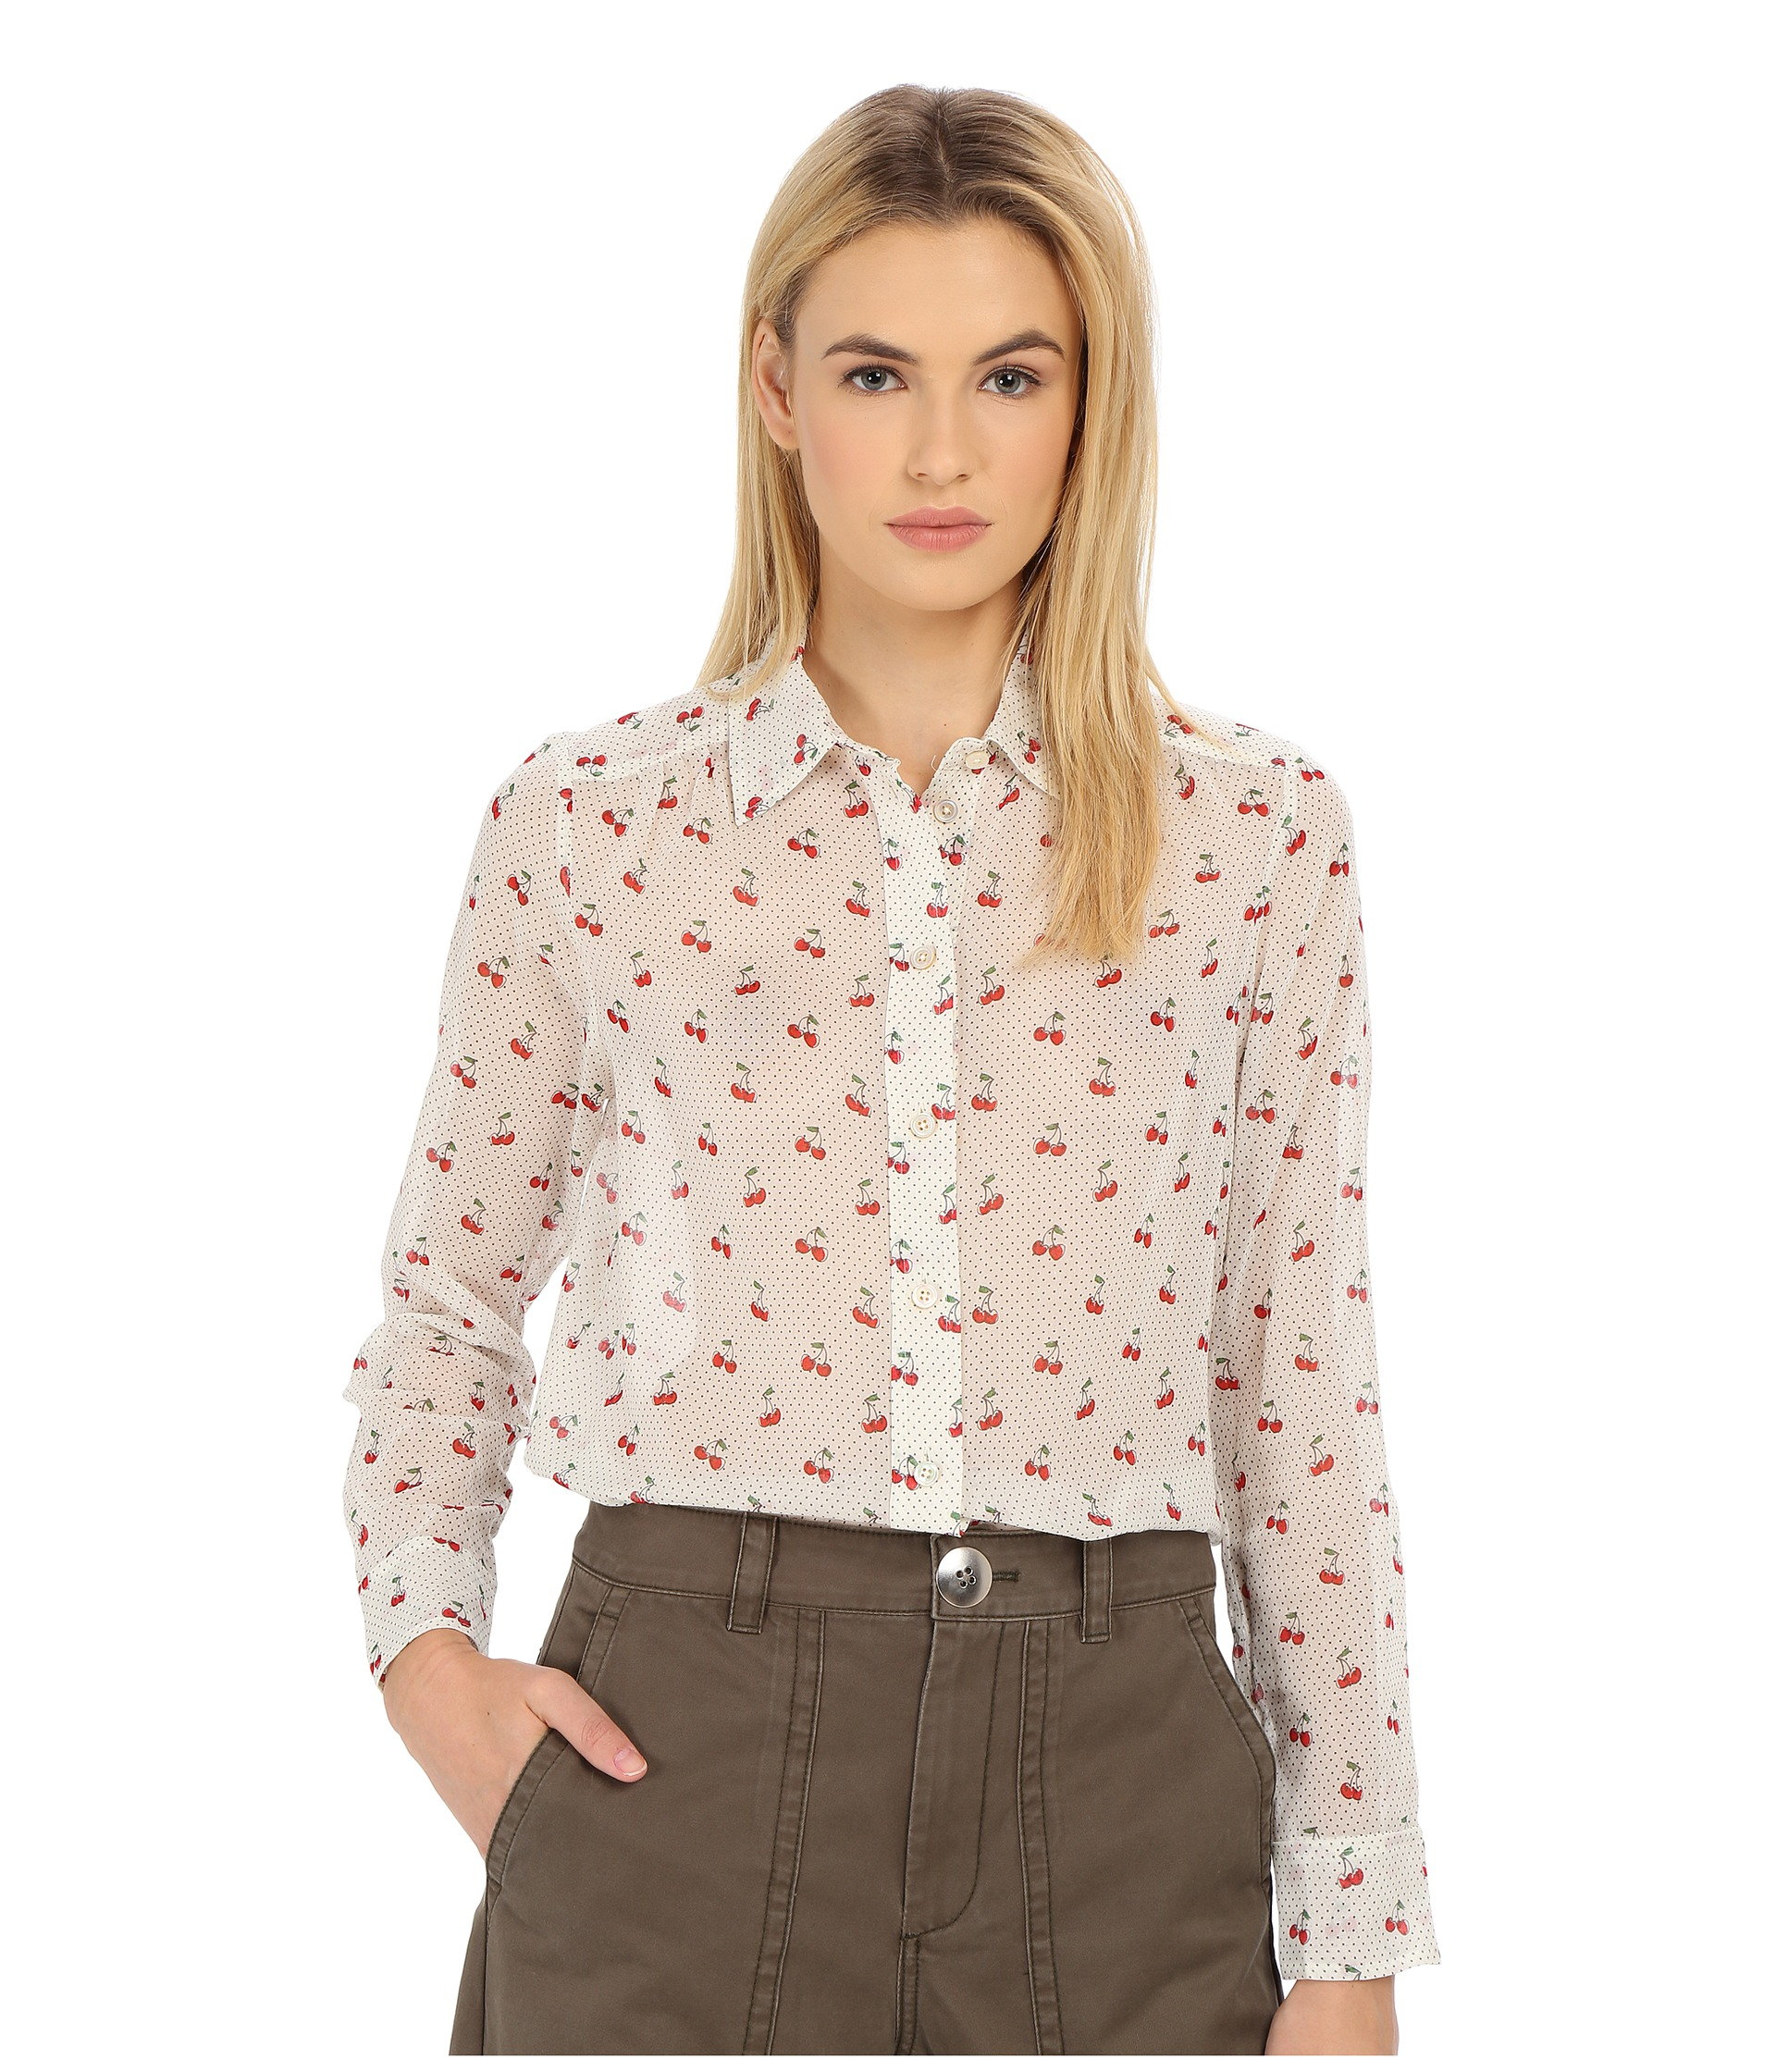 dc94bbabe39e54 Marc By Marc Jacobs Cherry Pindot Voile Button Up Shirt in White - Lyst